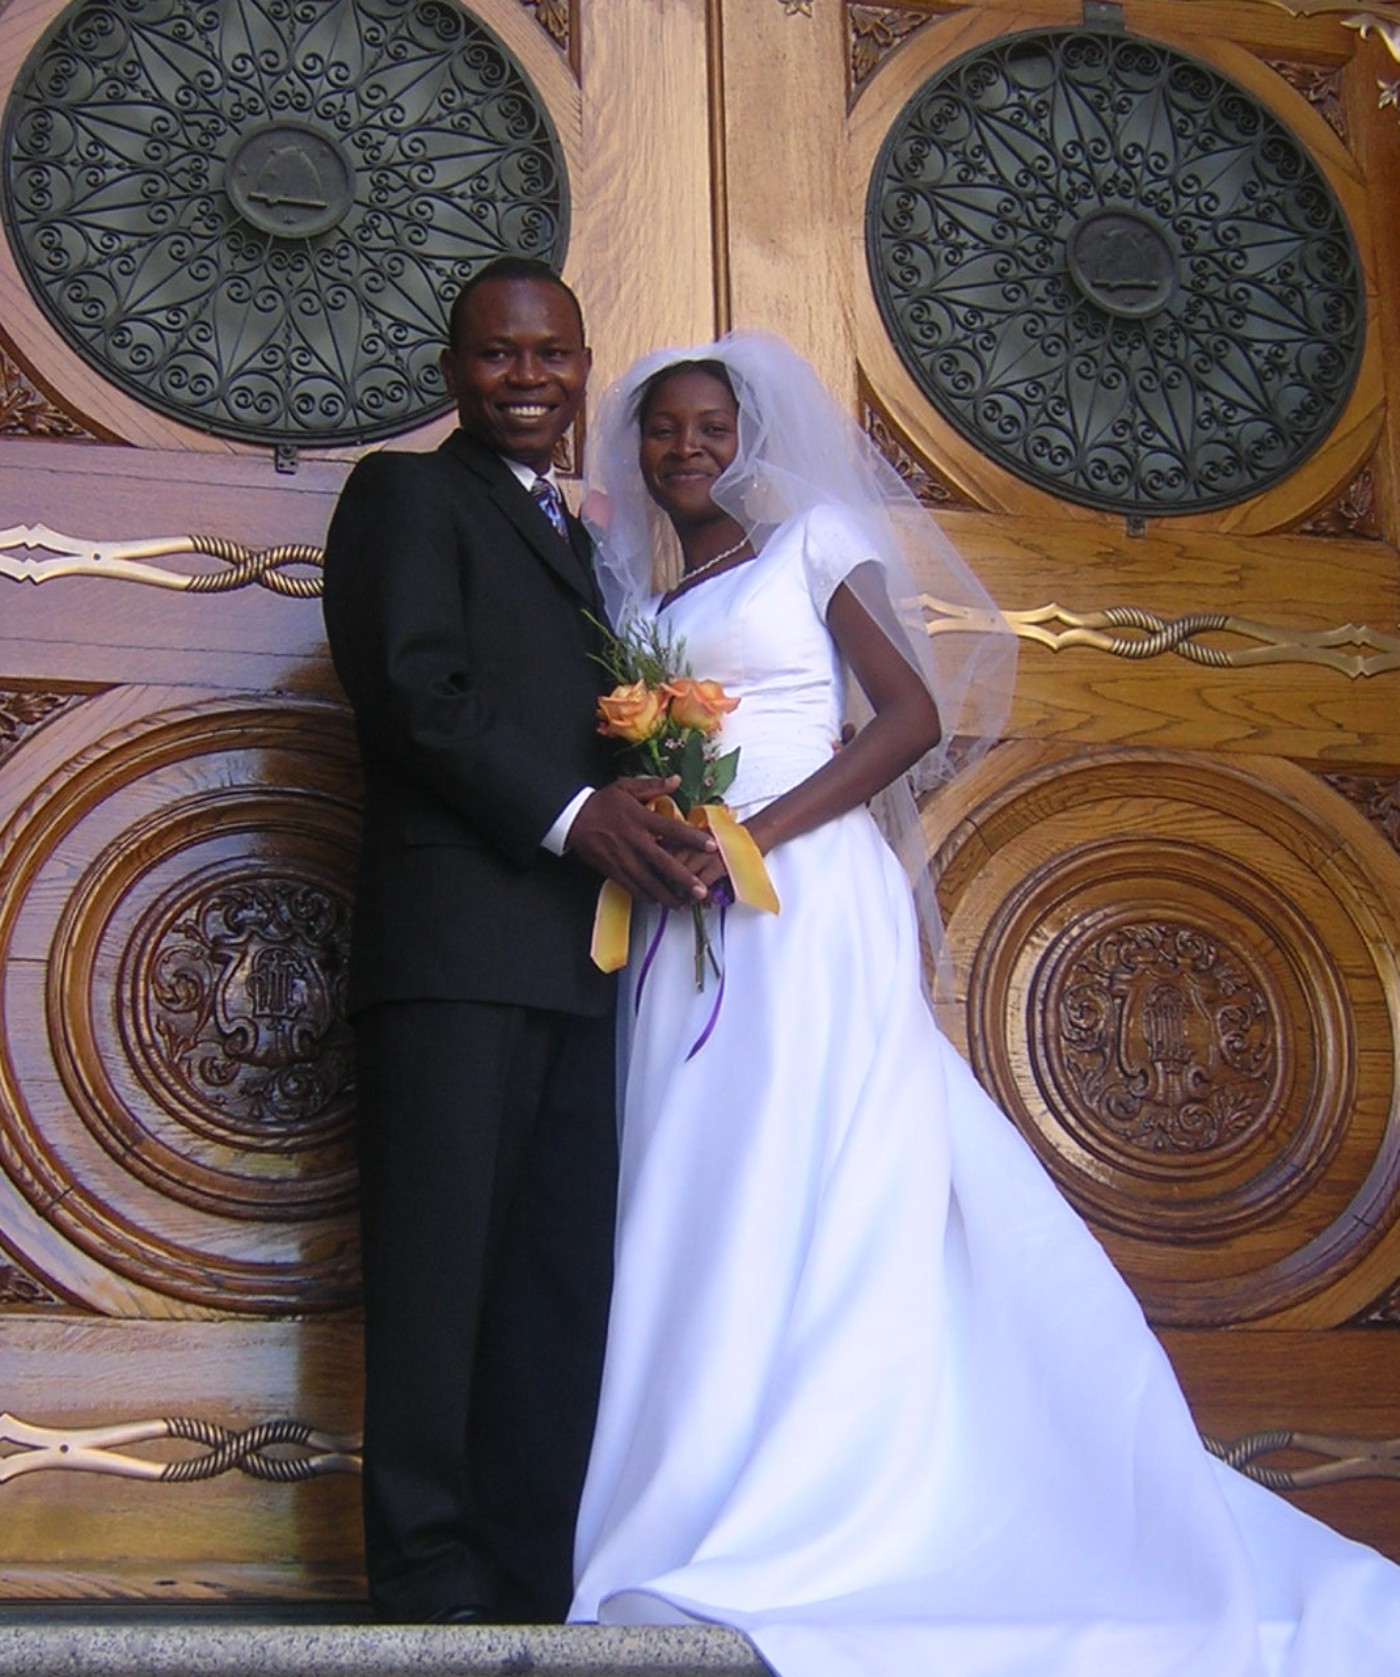 Jony and Annia St. Louis visit Salt Lake City, Utah from Haiti in 2005 to be sealed in the Salt Lake Temple. Annia died after injuries sustained from the earthquake in Haiti in Jan. 210. Photos courtesy of Charlotte Pratt. Tuesday, Jan.19, 2010.